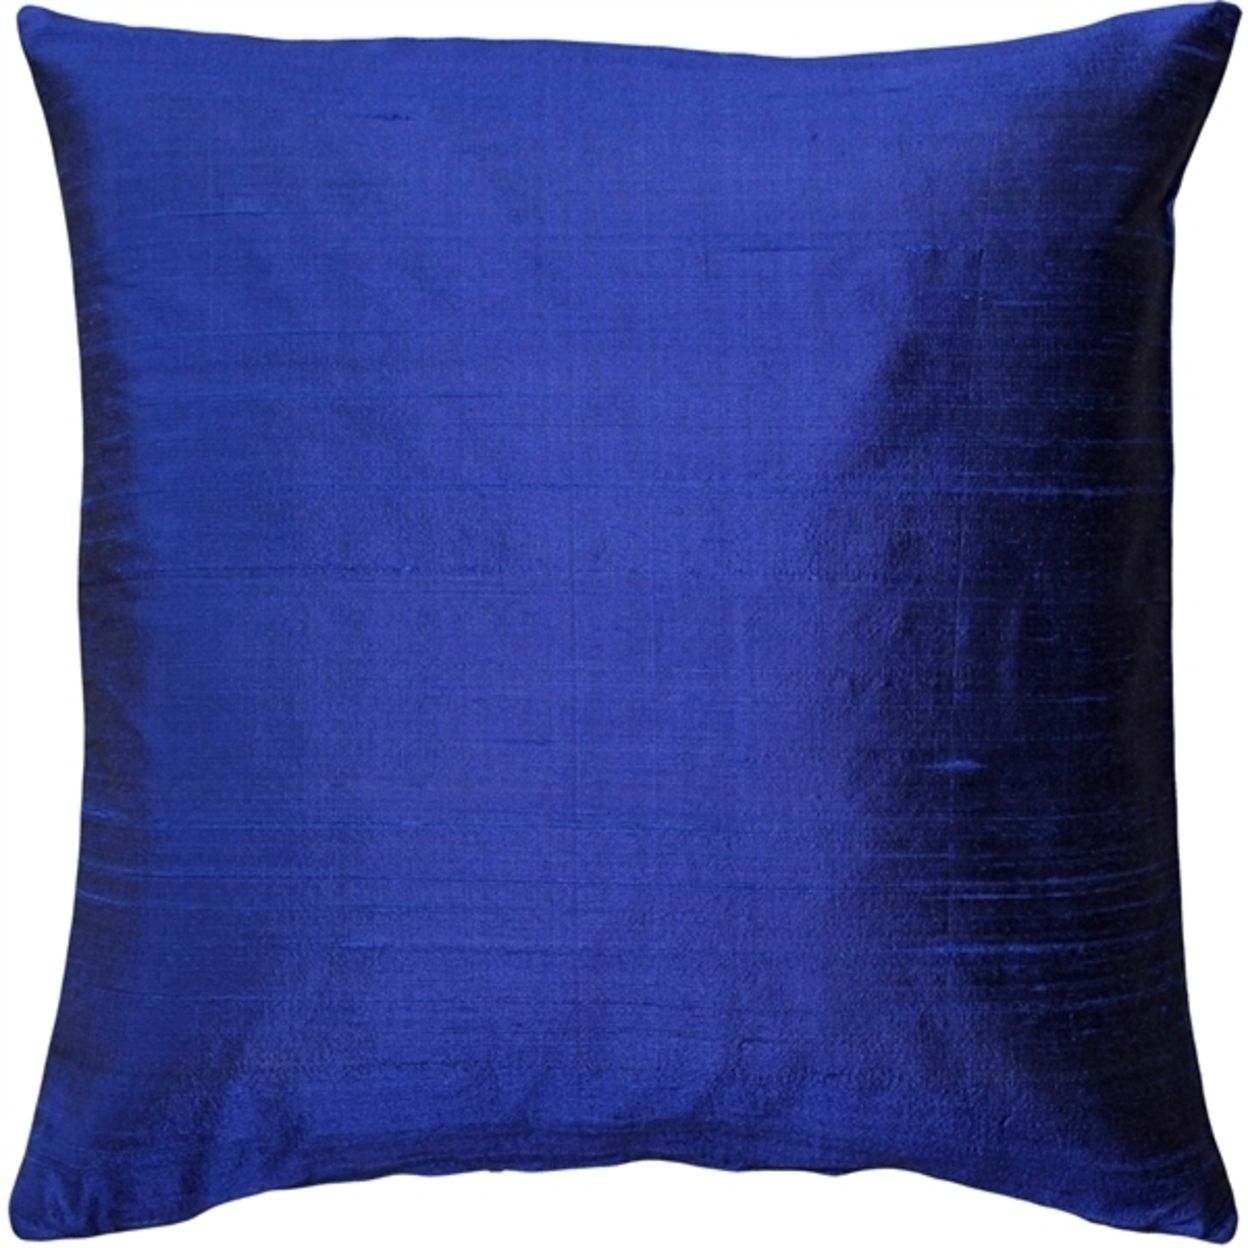 Pillow Decor - Sankara Ink Blue Silk Throw Pillow 16x16 56578f59a3771c8f498bcccb